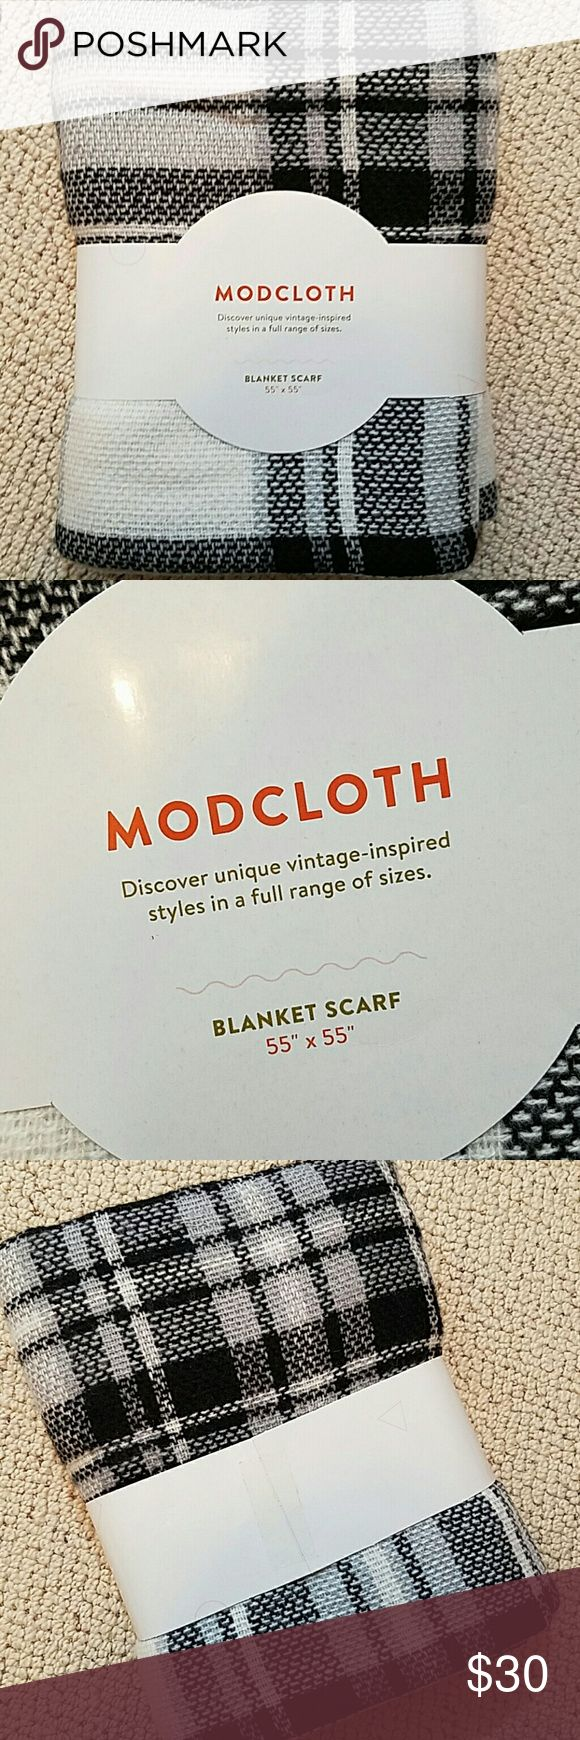 ModCloth Blanket Scarf Black and white plaid blanket scarf by ModCloth. New, never taken out of packaging. Super cute but I already have several similar. ModCloth Accessories Scarves & Wraps